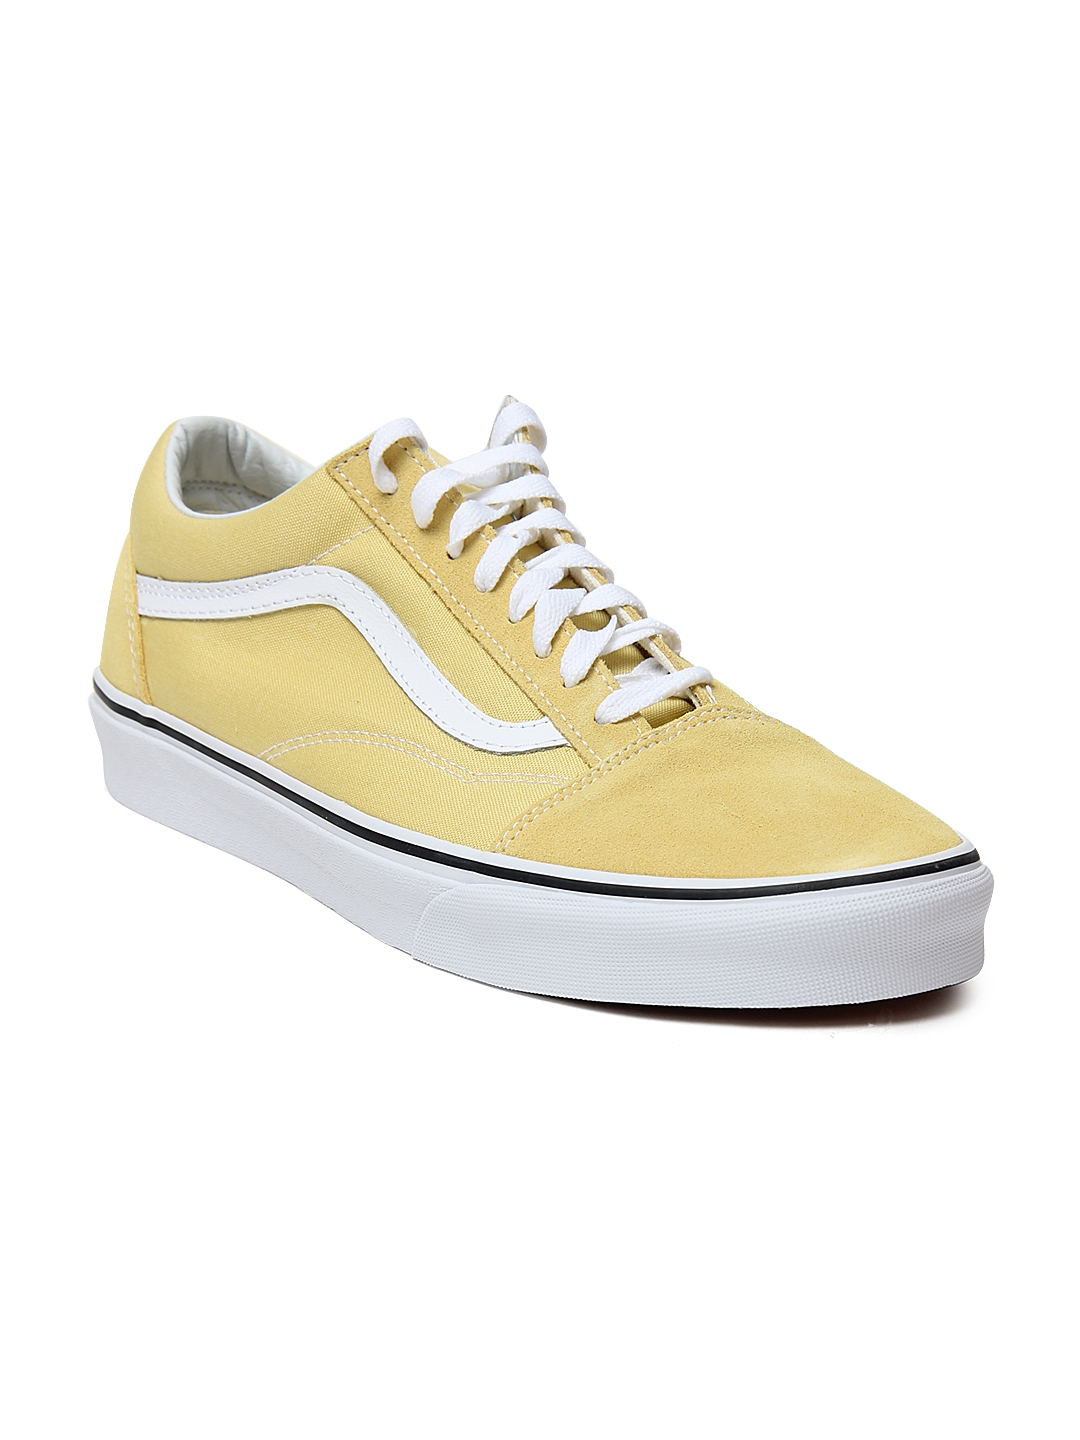 d284a198439 Buy Vans Unisex Yellow Old Skool Sneakers - Casual Shoes for Unisex ...